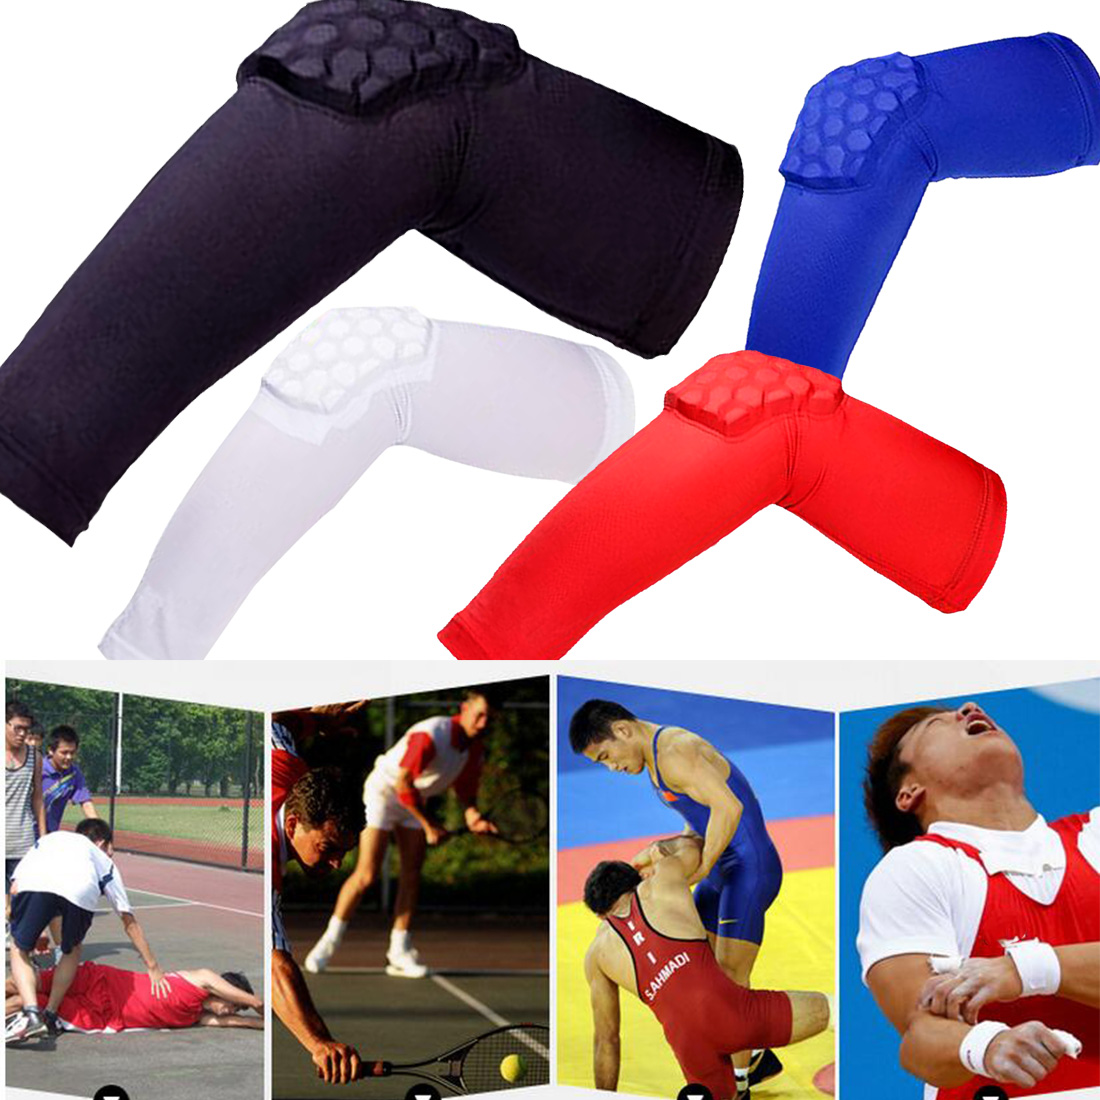 Brand New Breathable Crashproof Honeycomb Elbow Pad Support Protector Guards Pads Basketball Elastic Sweat Arm Sleeve Warmers